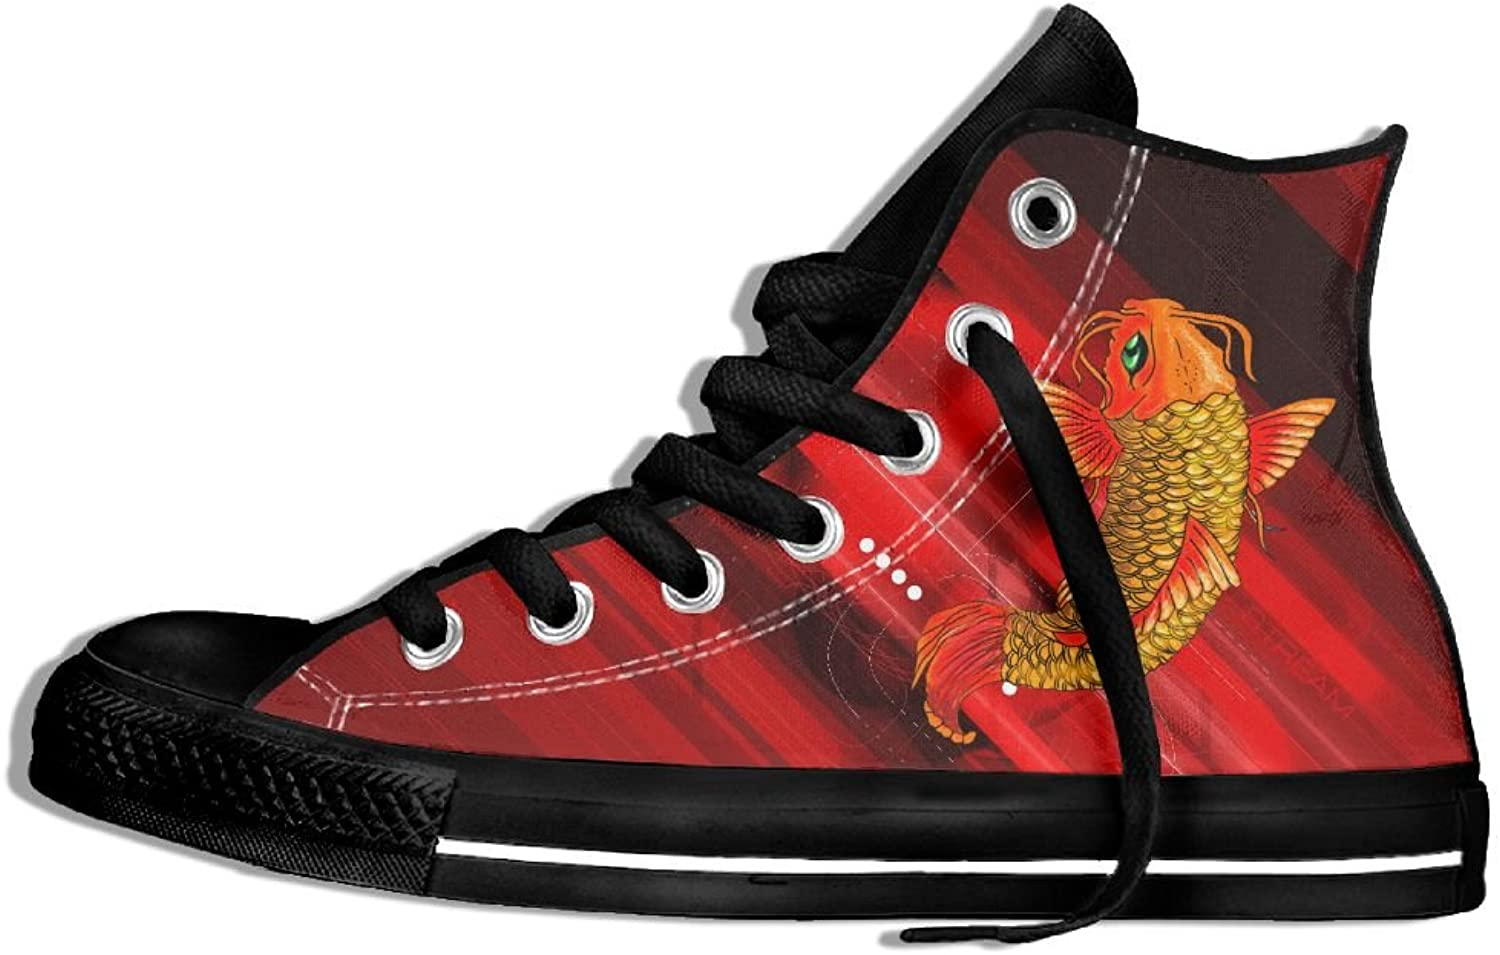 Fish Traditional Asian Carp High Top Classic Casual Canvas Fashion shoes Sneakers For Women & Men